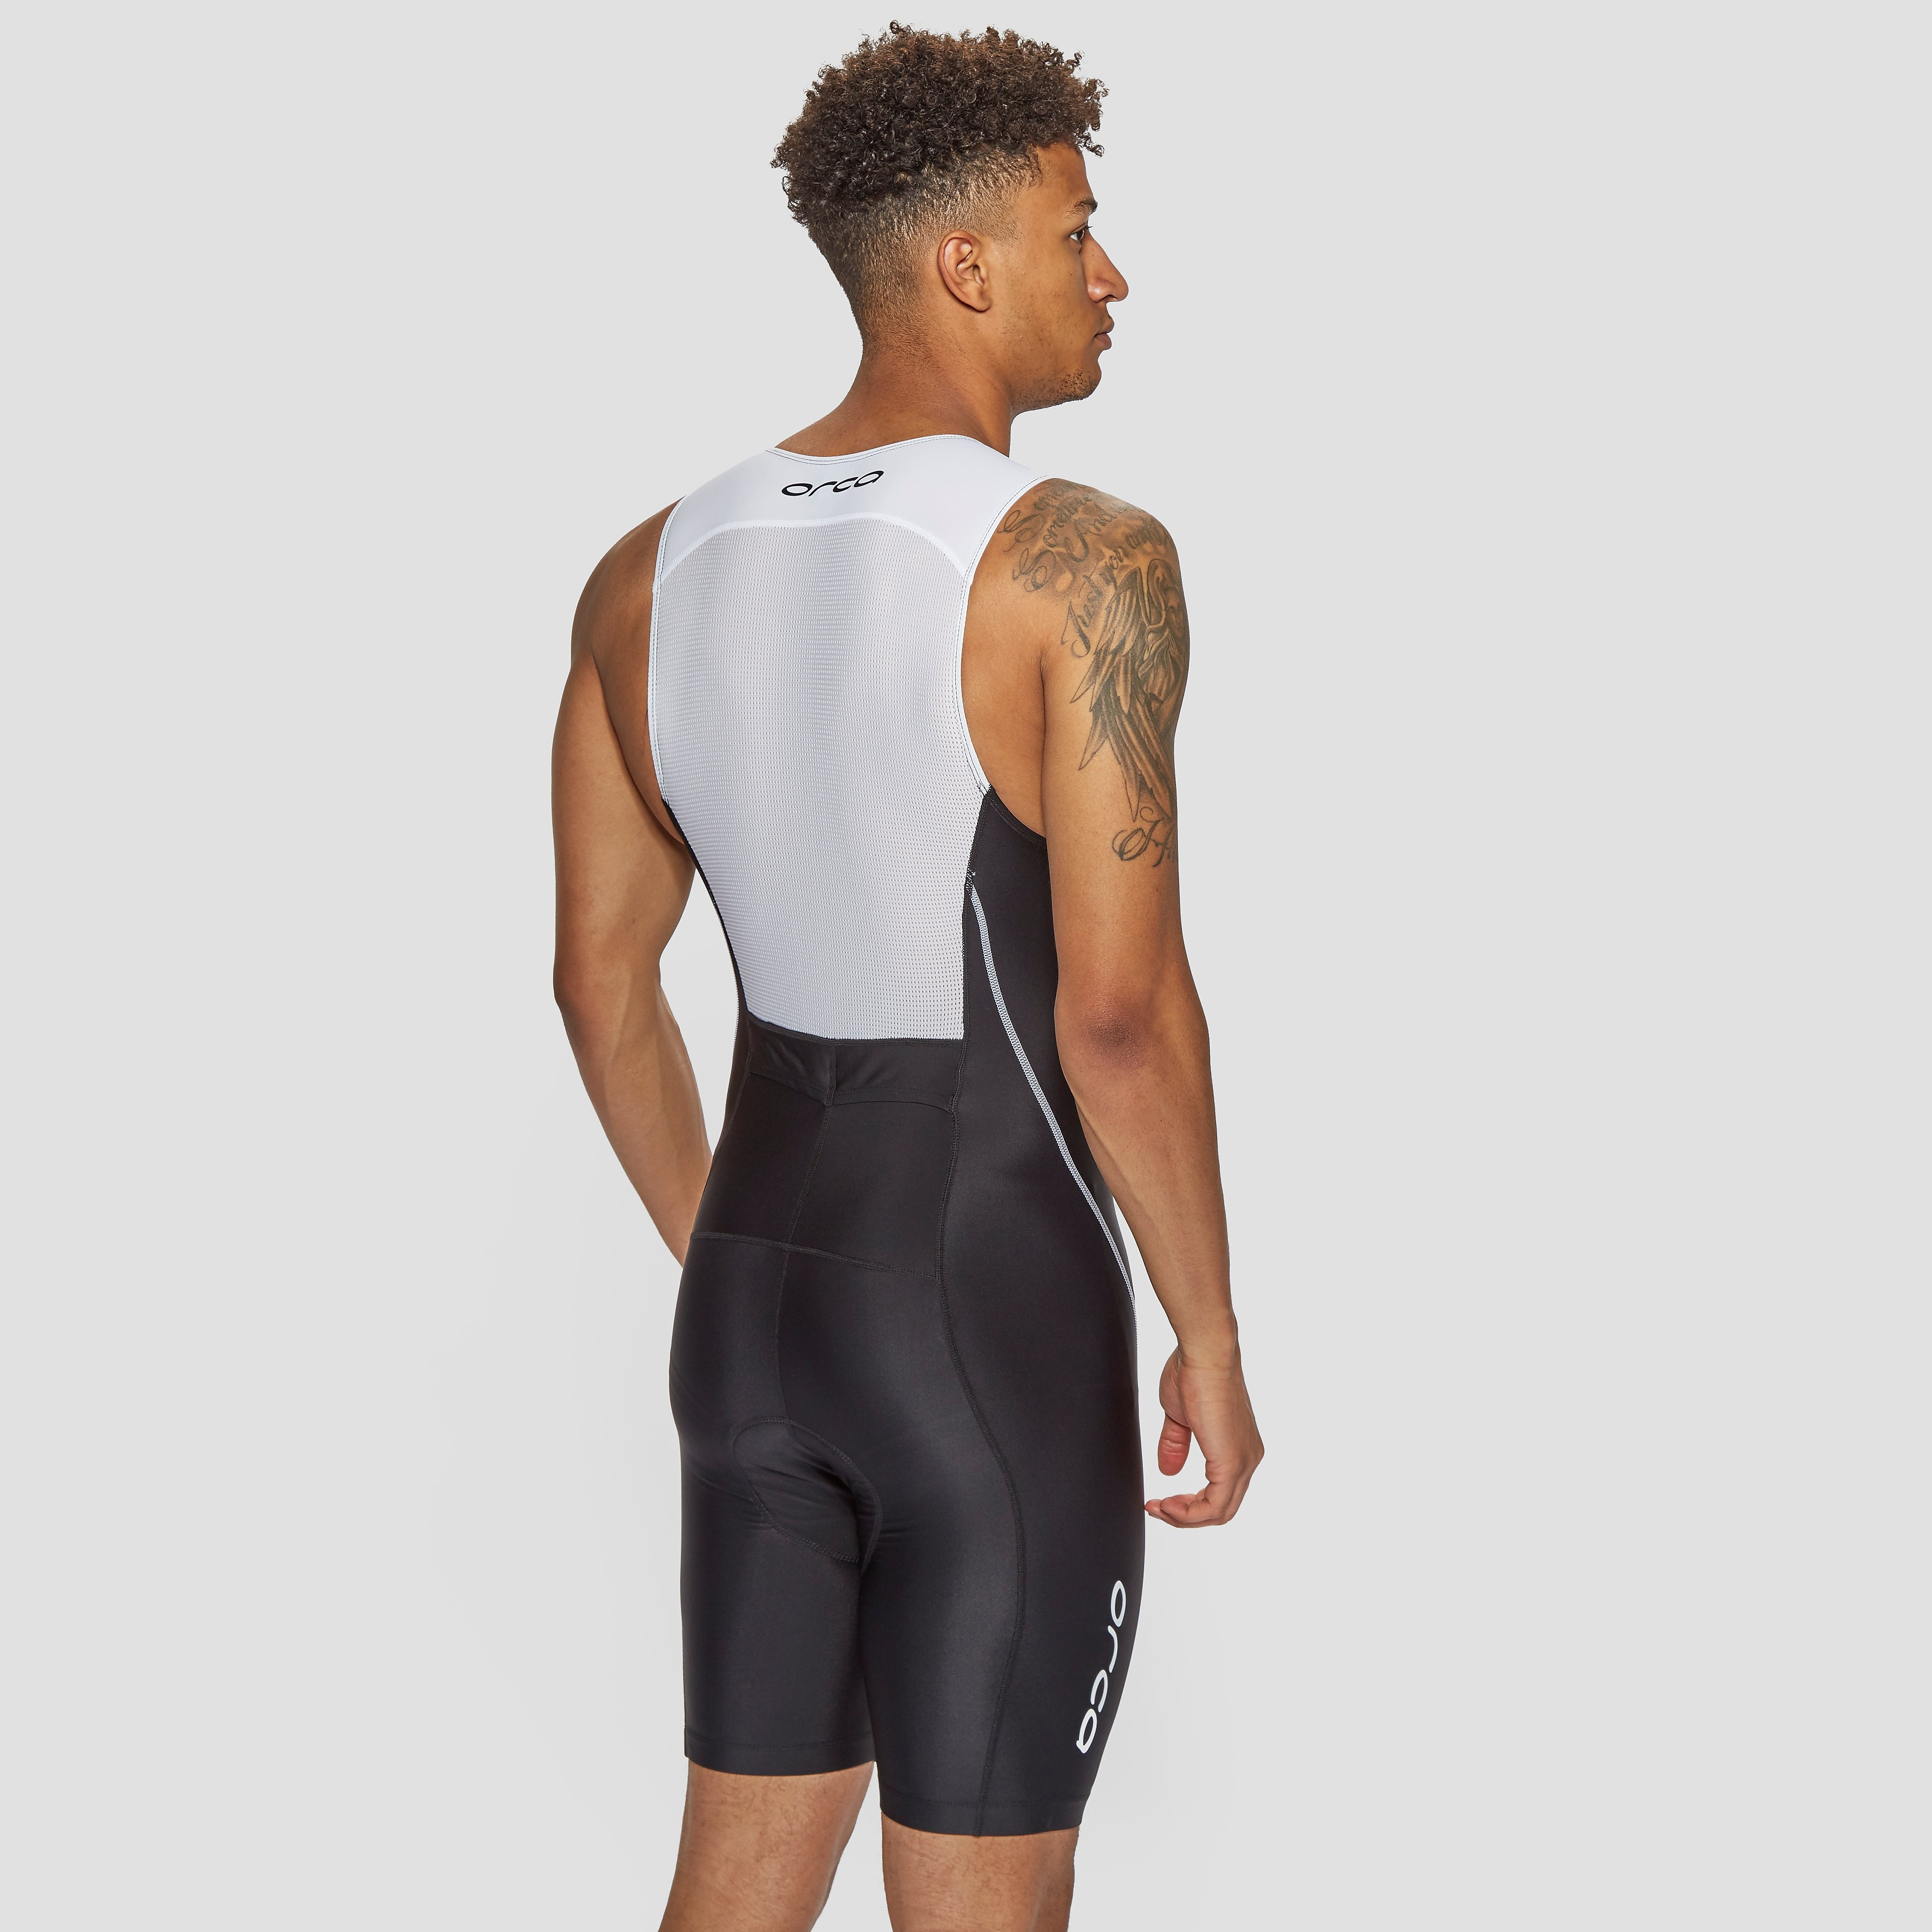 Orca Core Basic Men's Race Suit